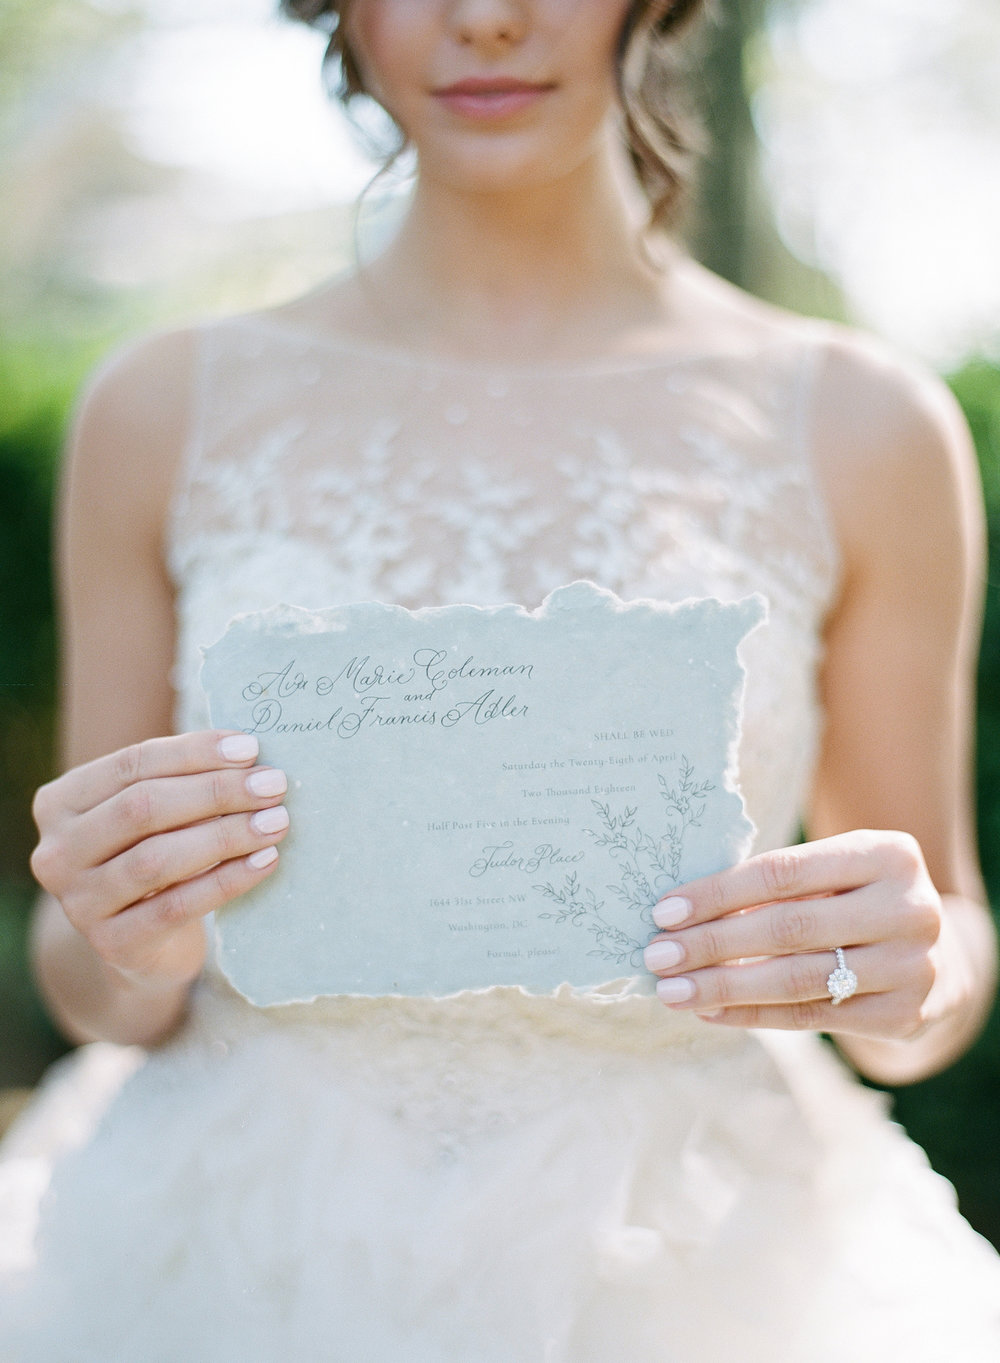 Design Details - The embroidery on the lace of the dress inspired me to create a similar pattern to feature on the wedding invitation. To highlight this, the text of the invitation flows from the pattern, as an extension of the design.